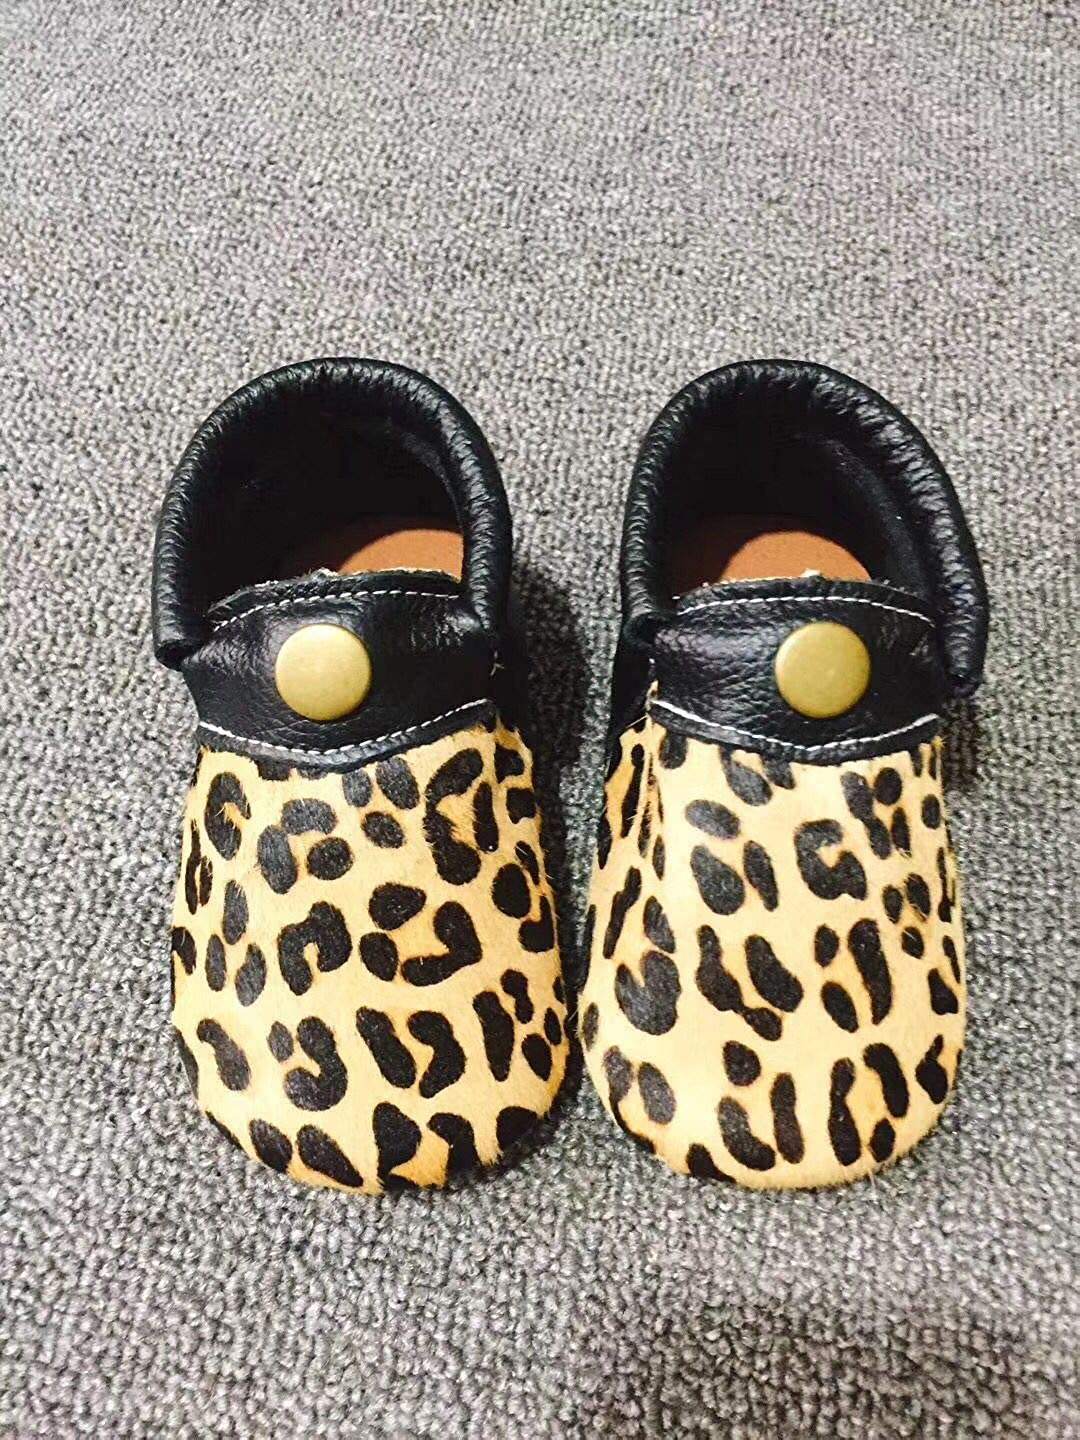 HONGTEYA Premium Leather Baby Slippers Fringeless Toddler Moccasins Leopard Print Sandals with Rubber Sole Shoes for Boys and Girls